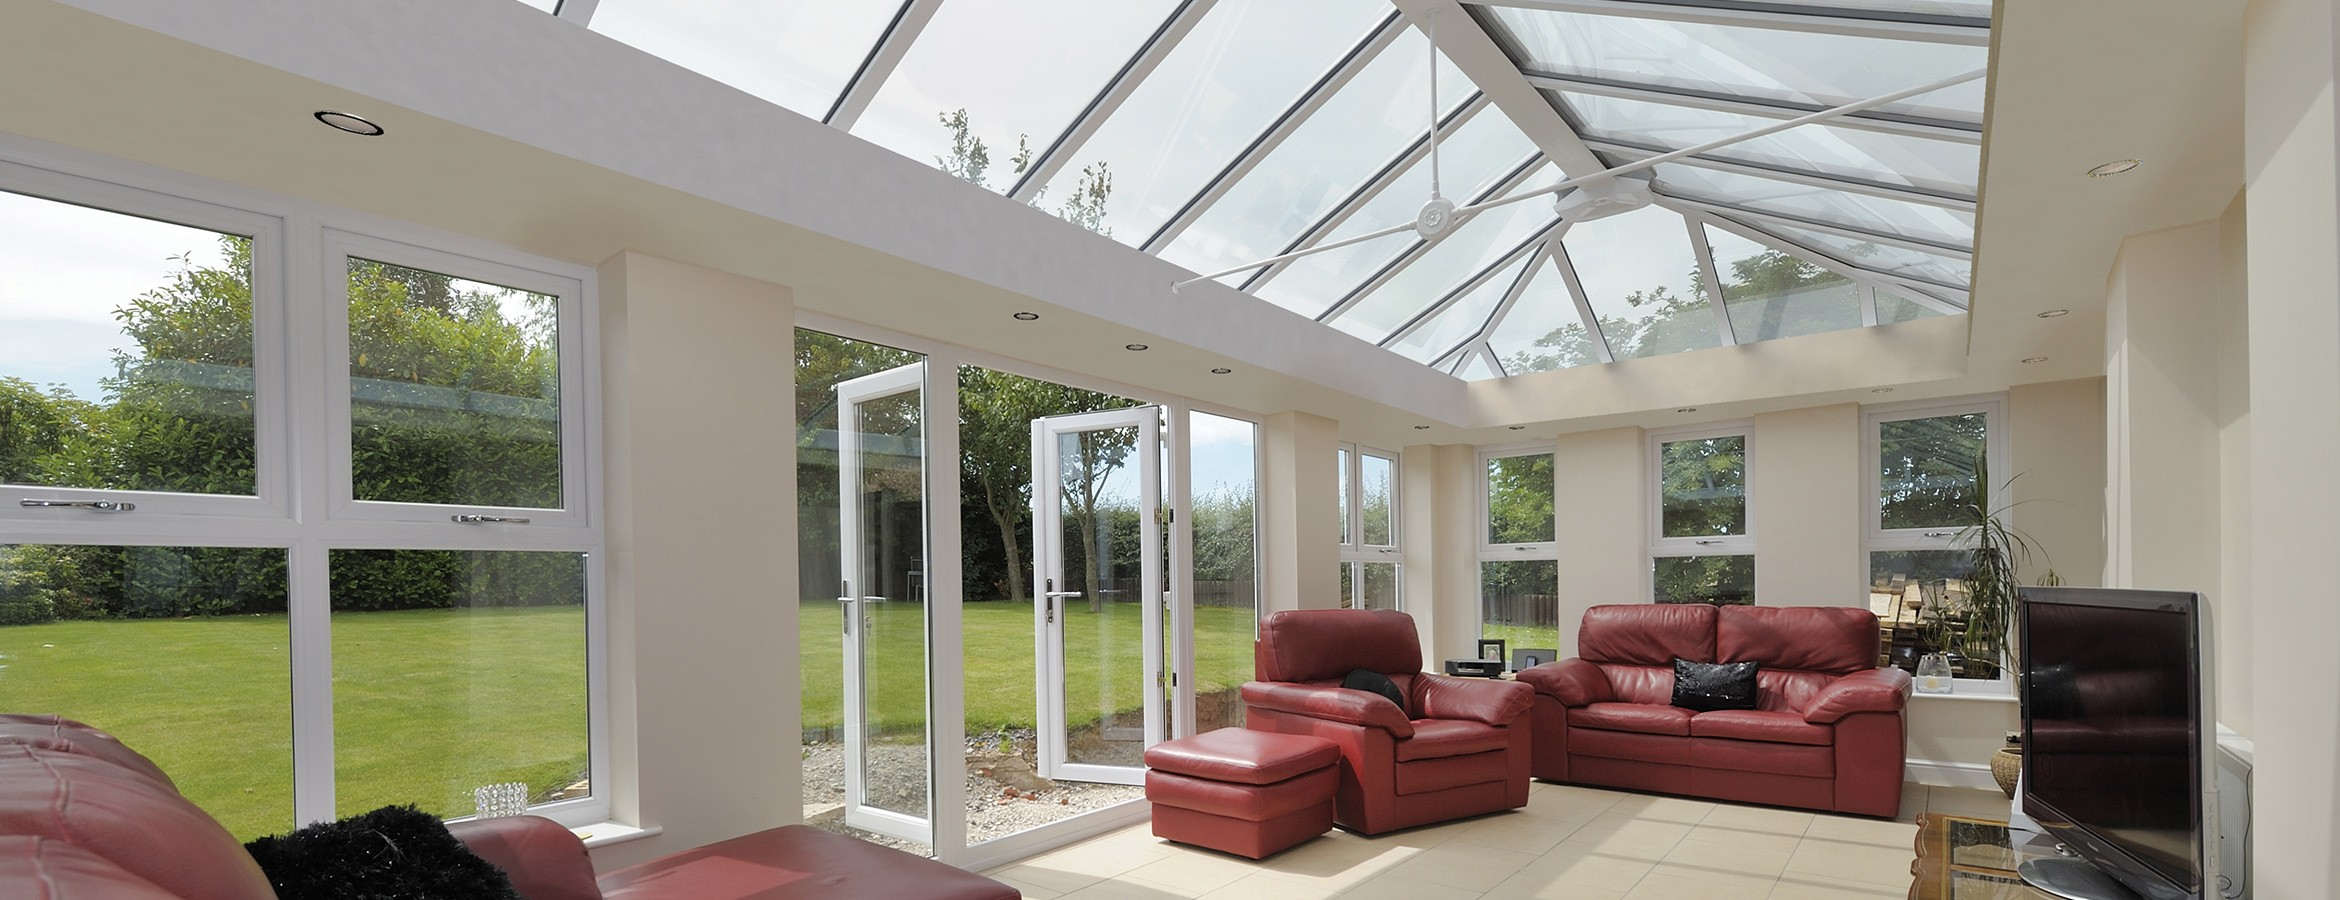 & Shane Howells | Double glazing in Ledbury Herefordshire